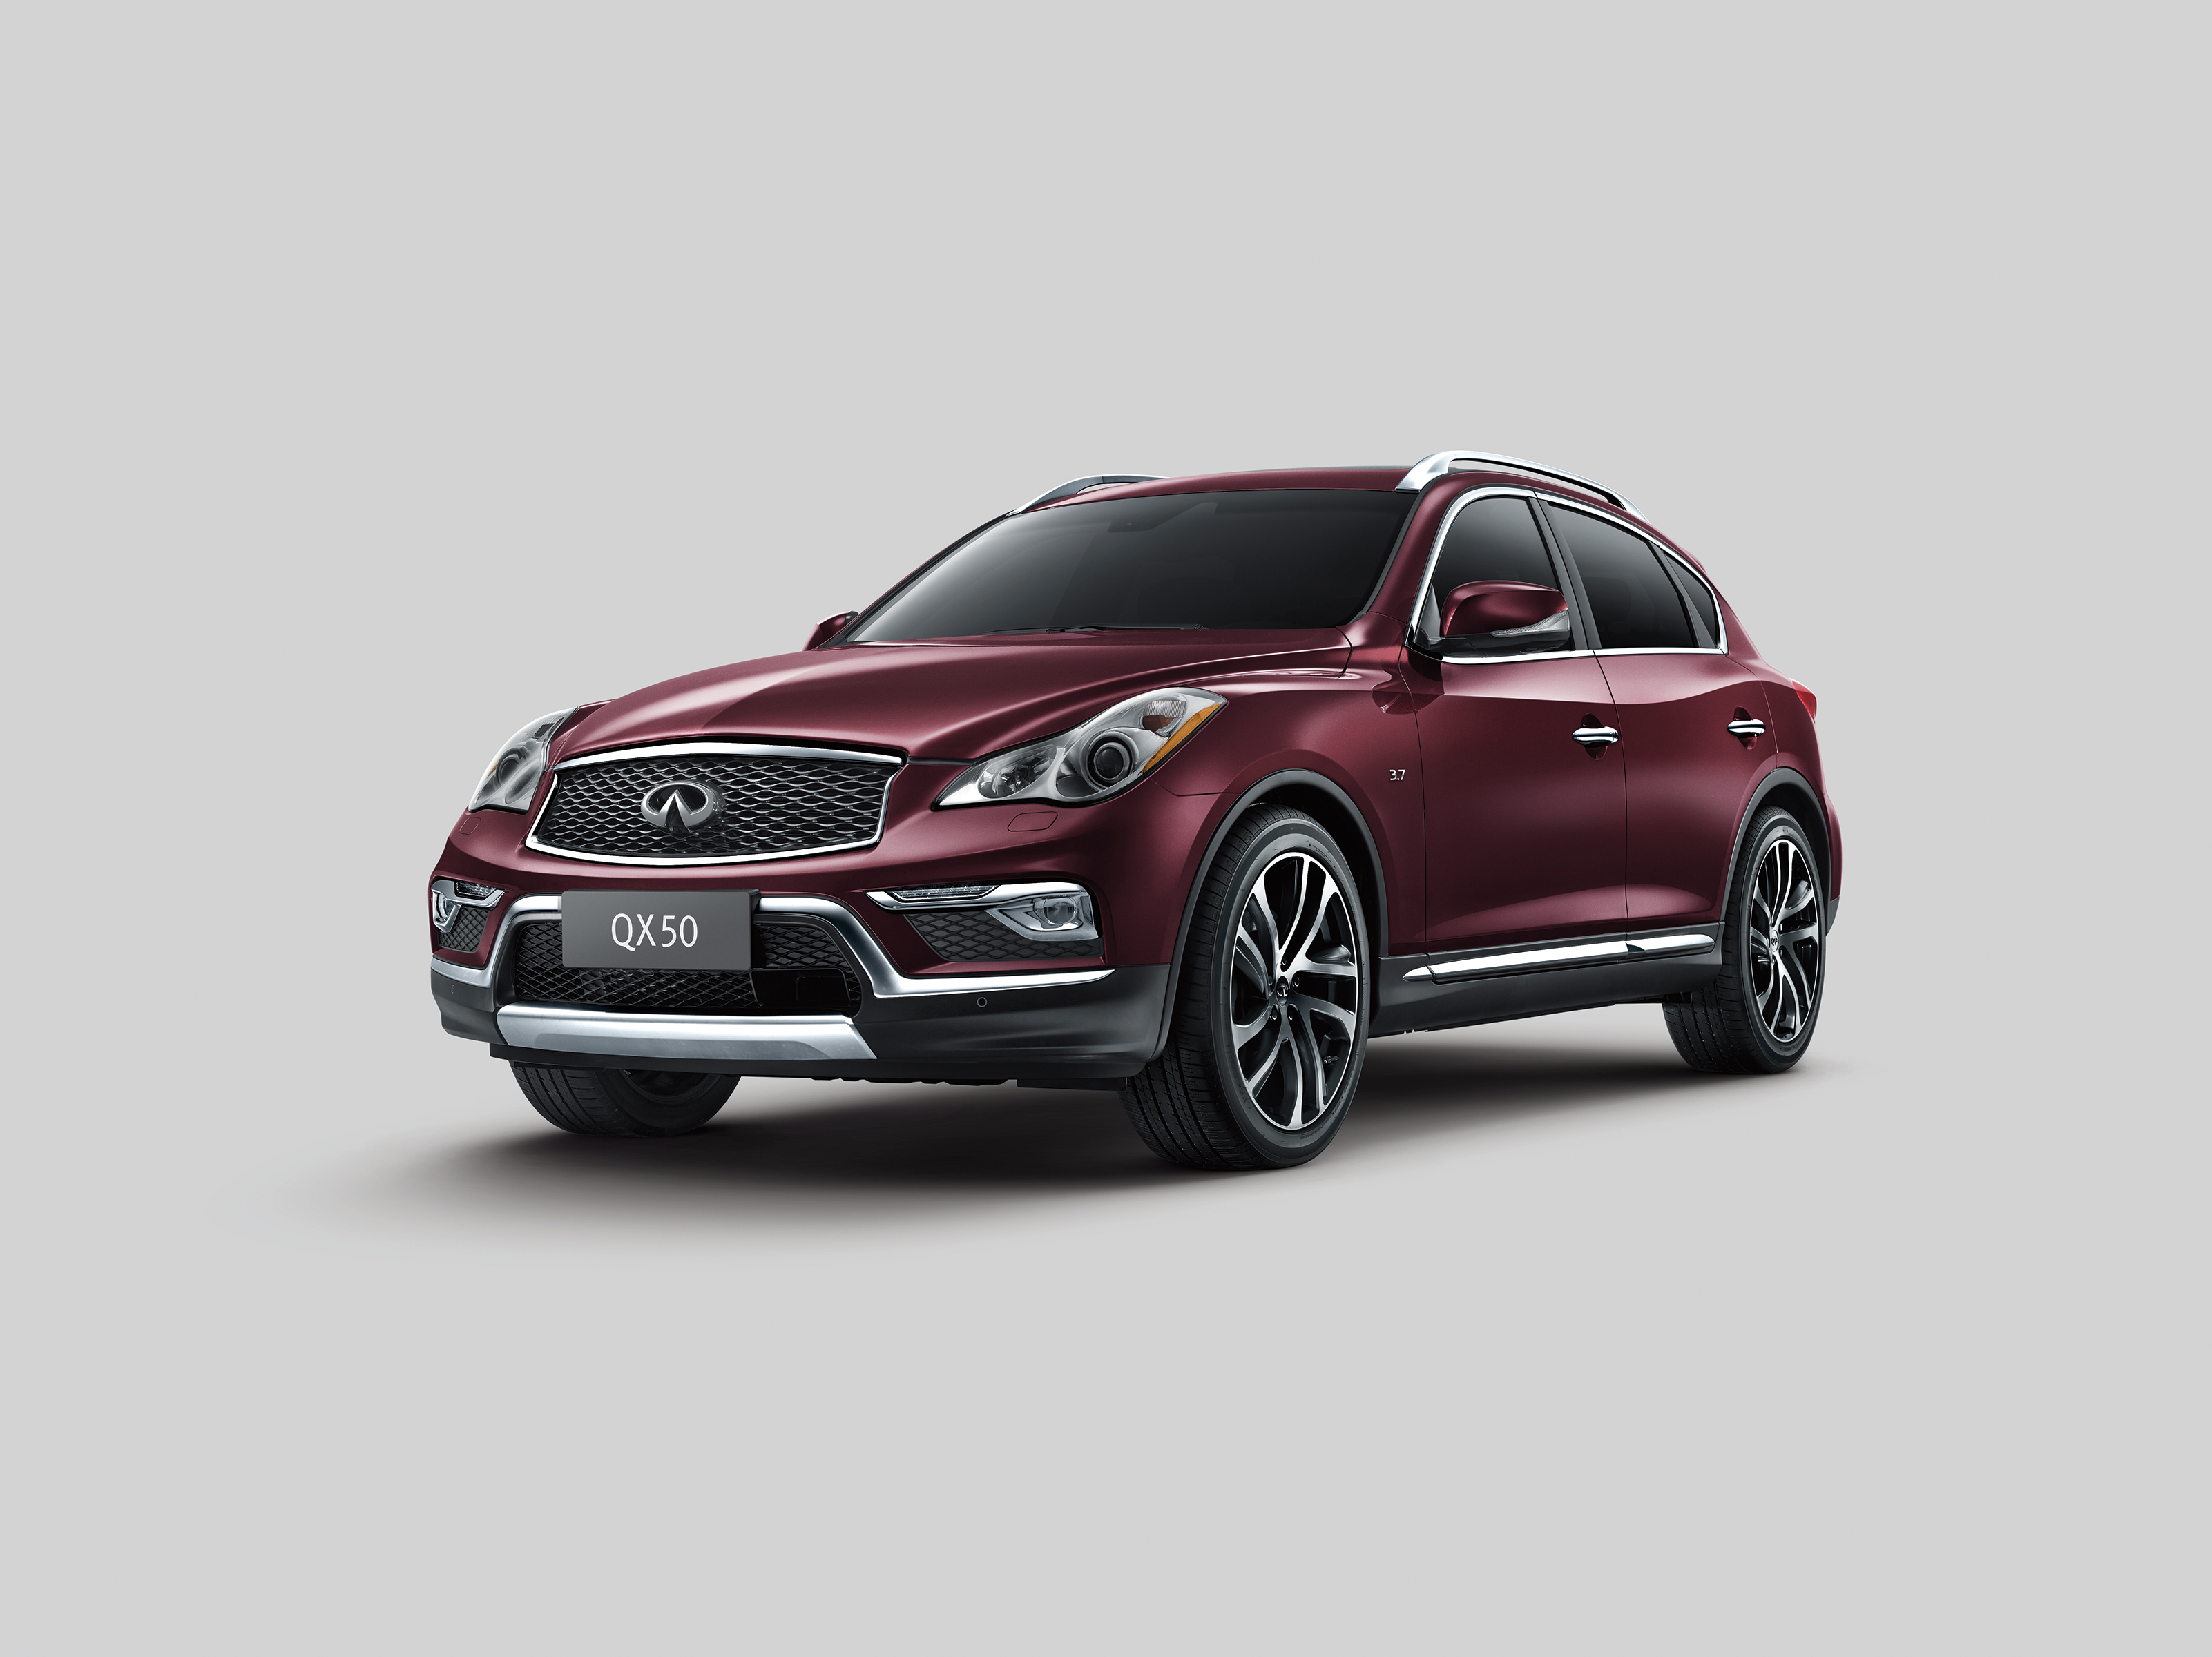 dealers news g infiniti speed reviews top cars and infinity